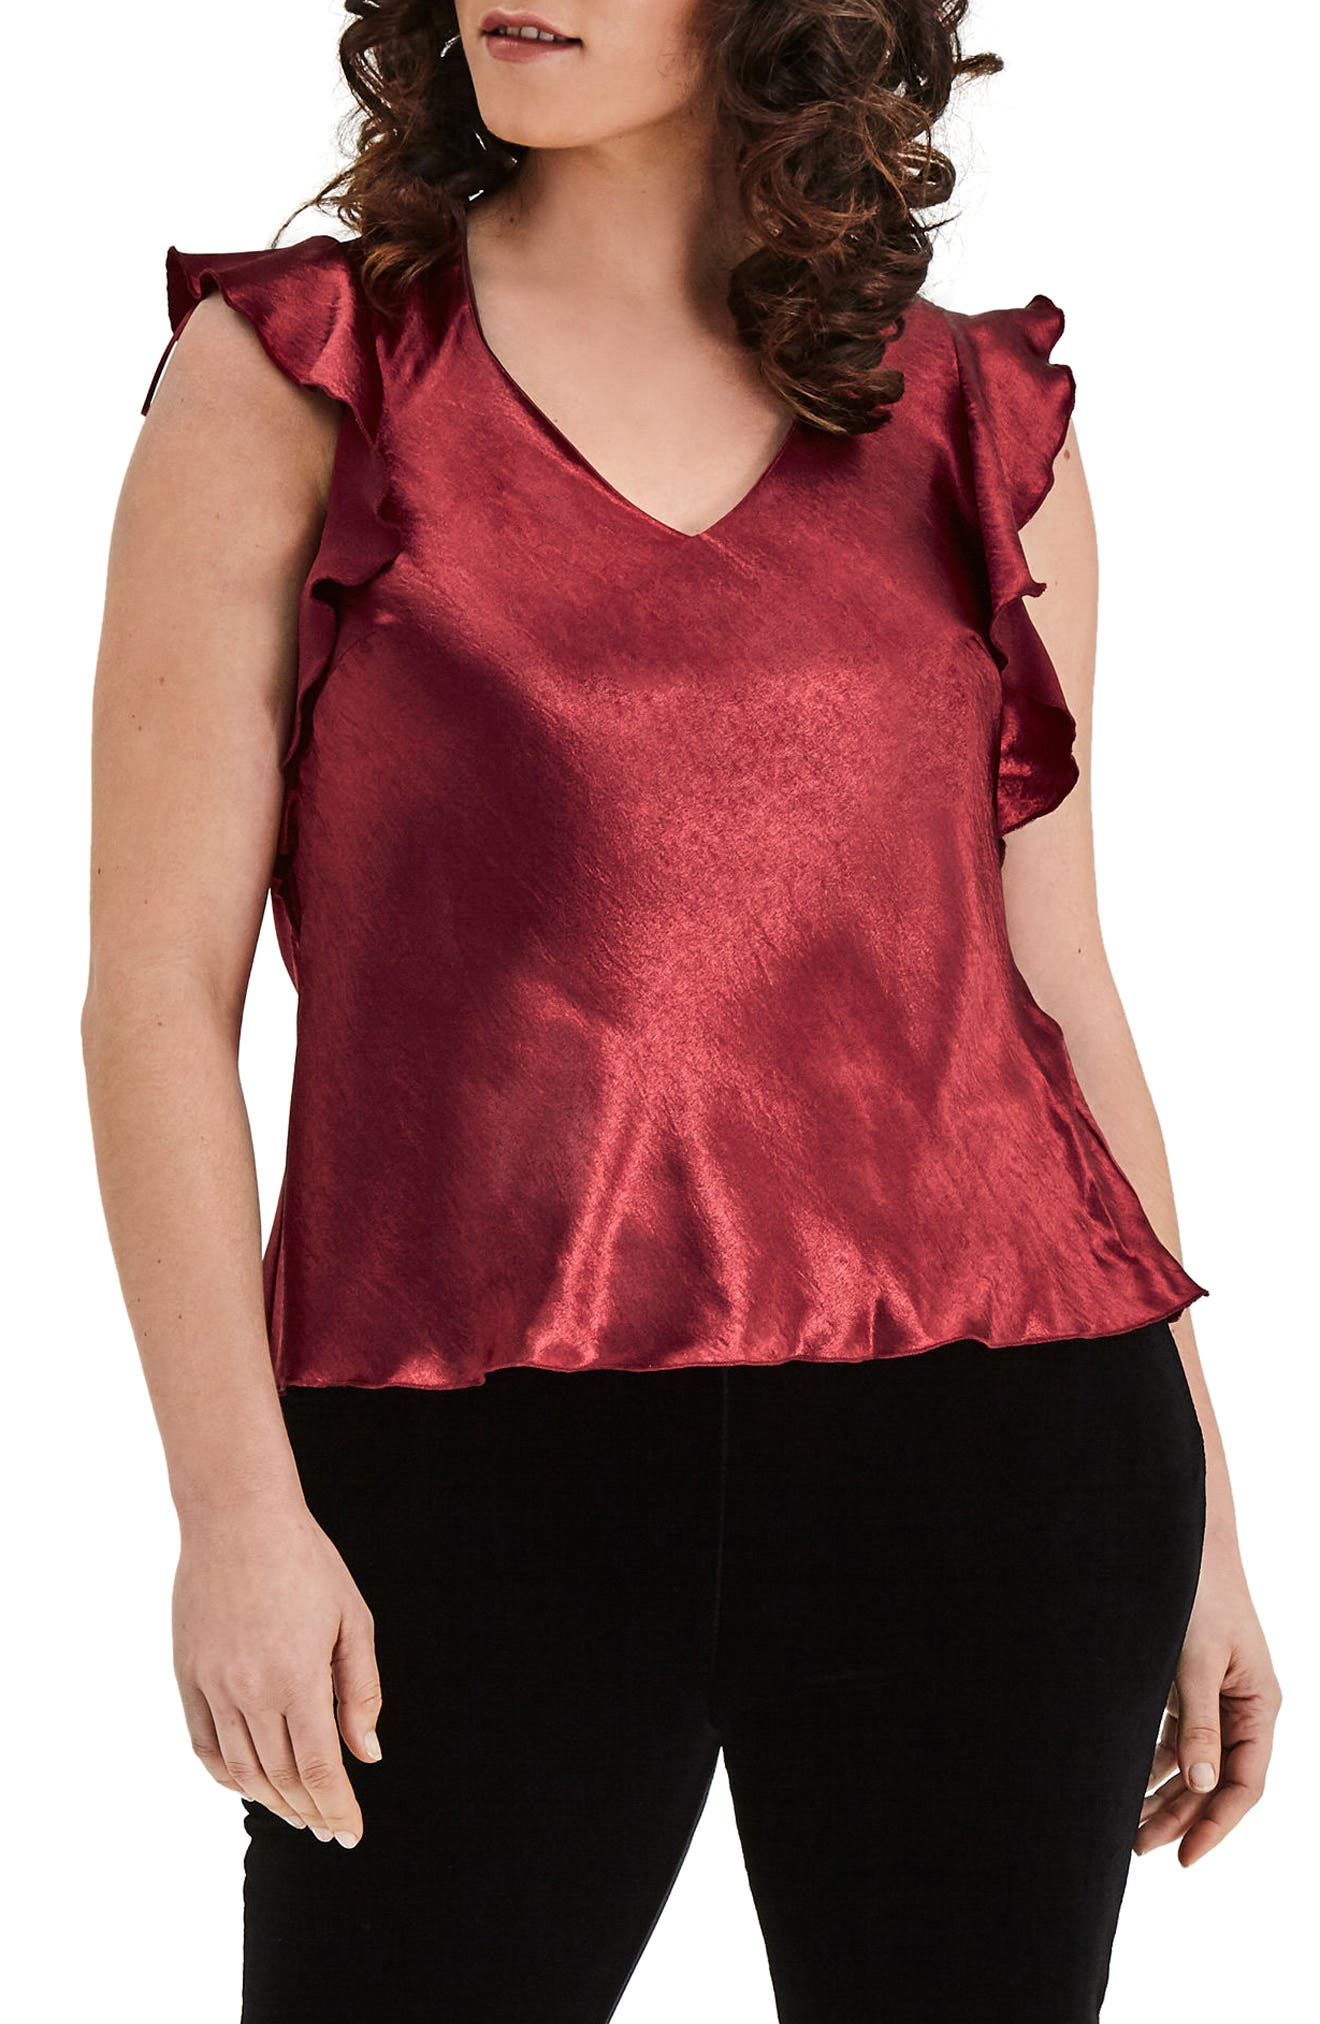 Wine Satin Top,                             Main thumbnail 1, color,                             640